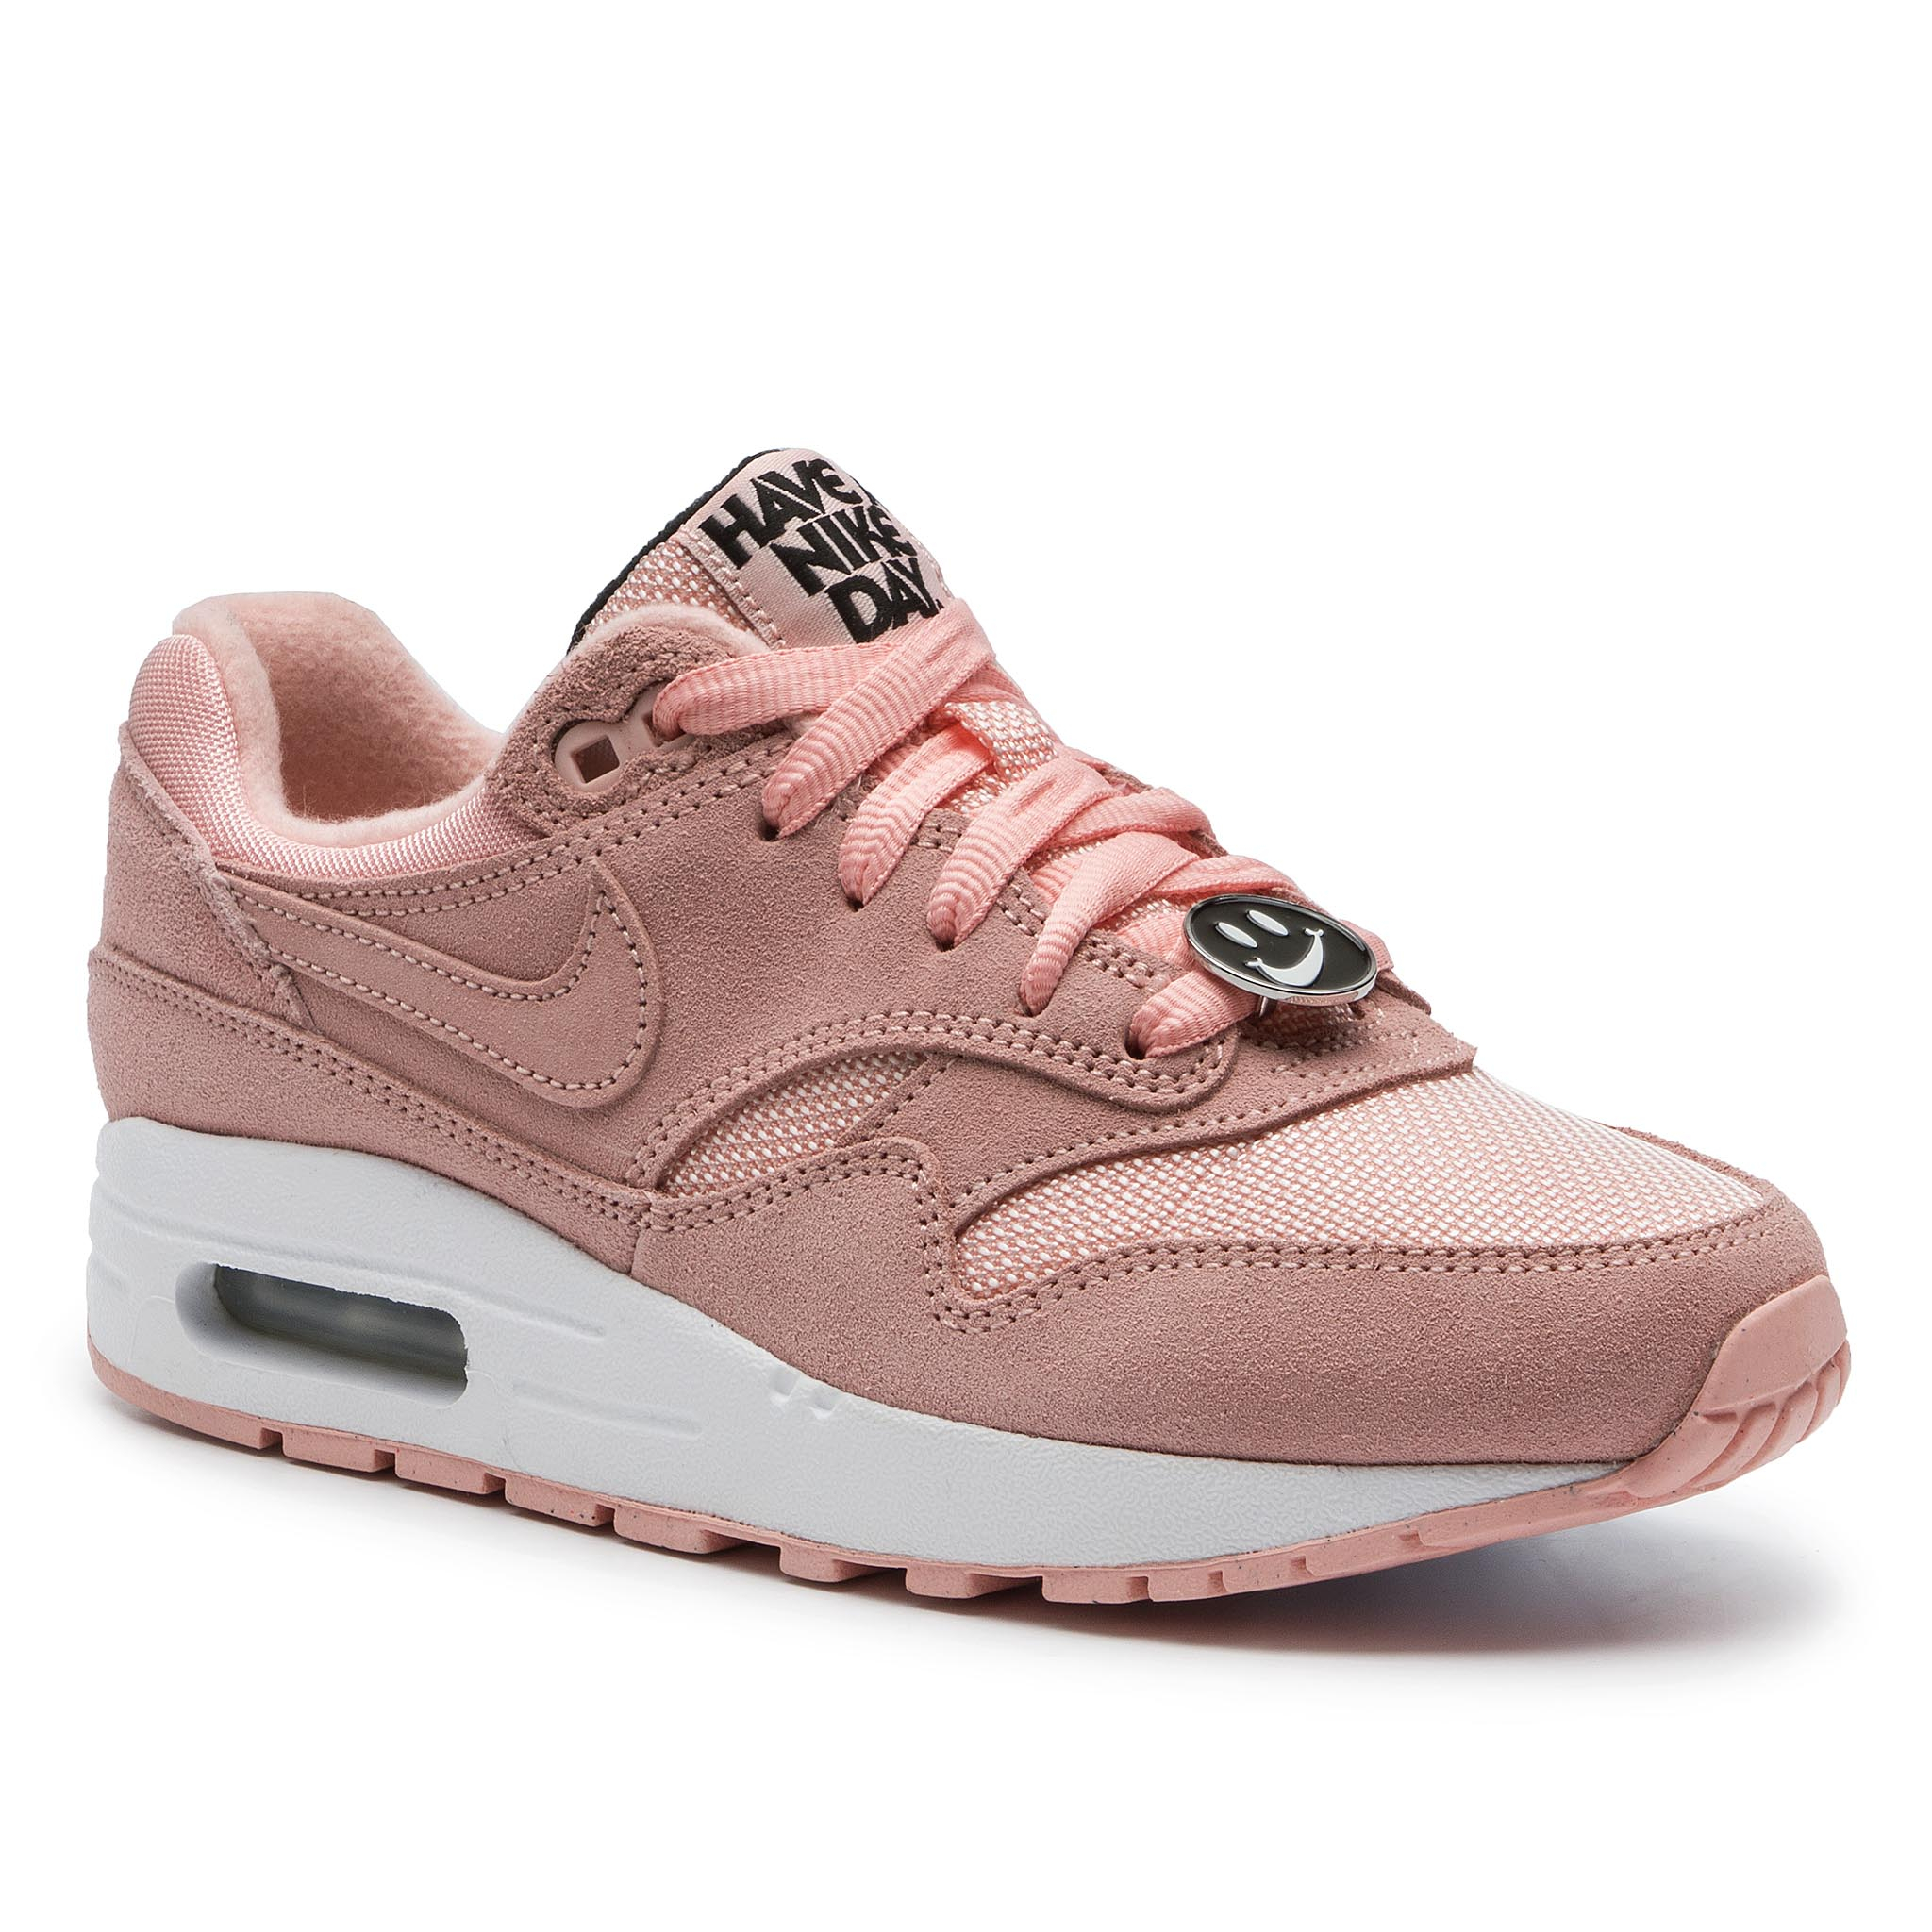 Pantofi NIKE - Air Max 1 Nk Day (Gs) AT8131 600 Bleached Coral/Bleached Coral